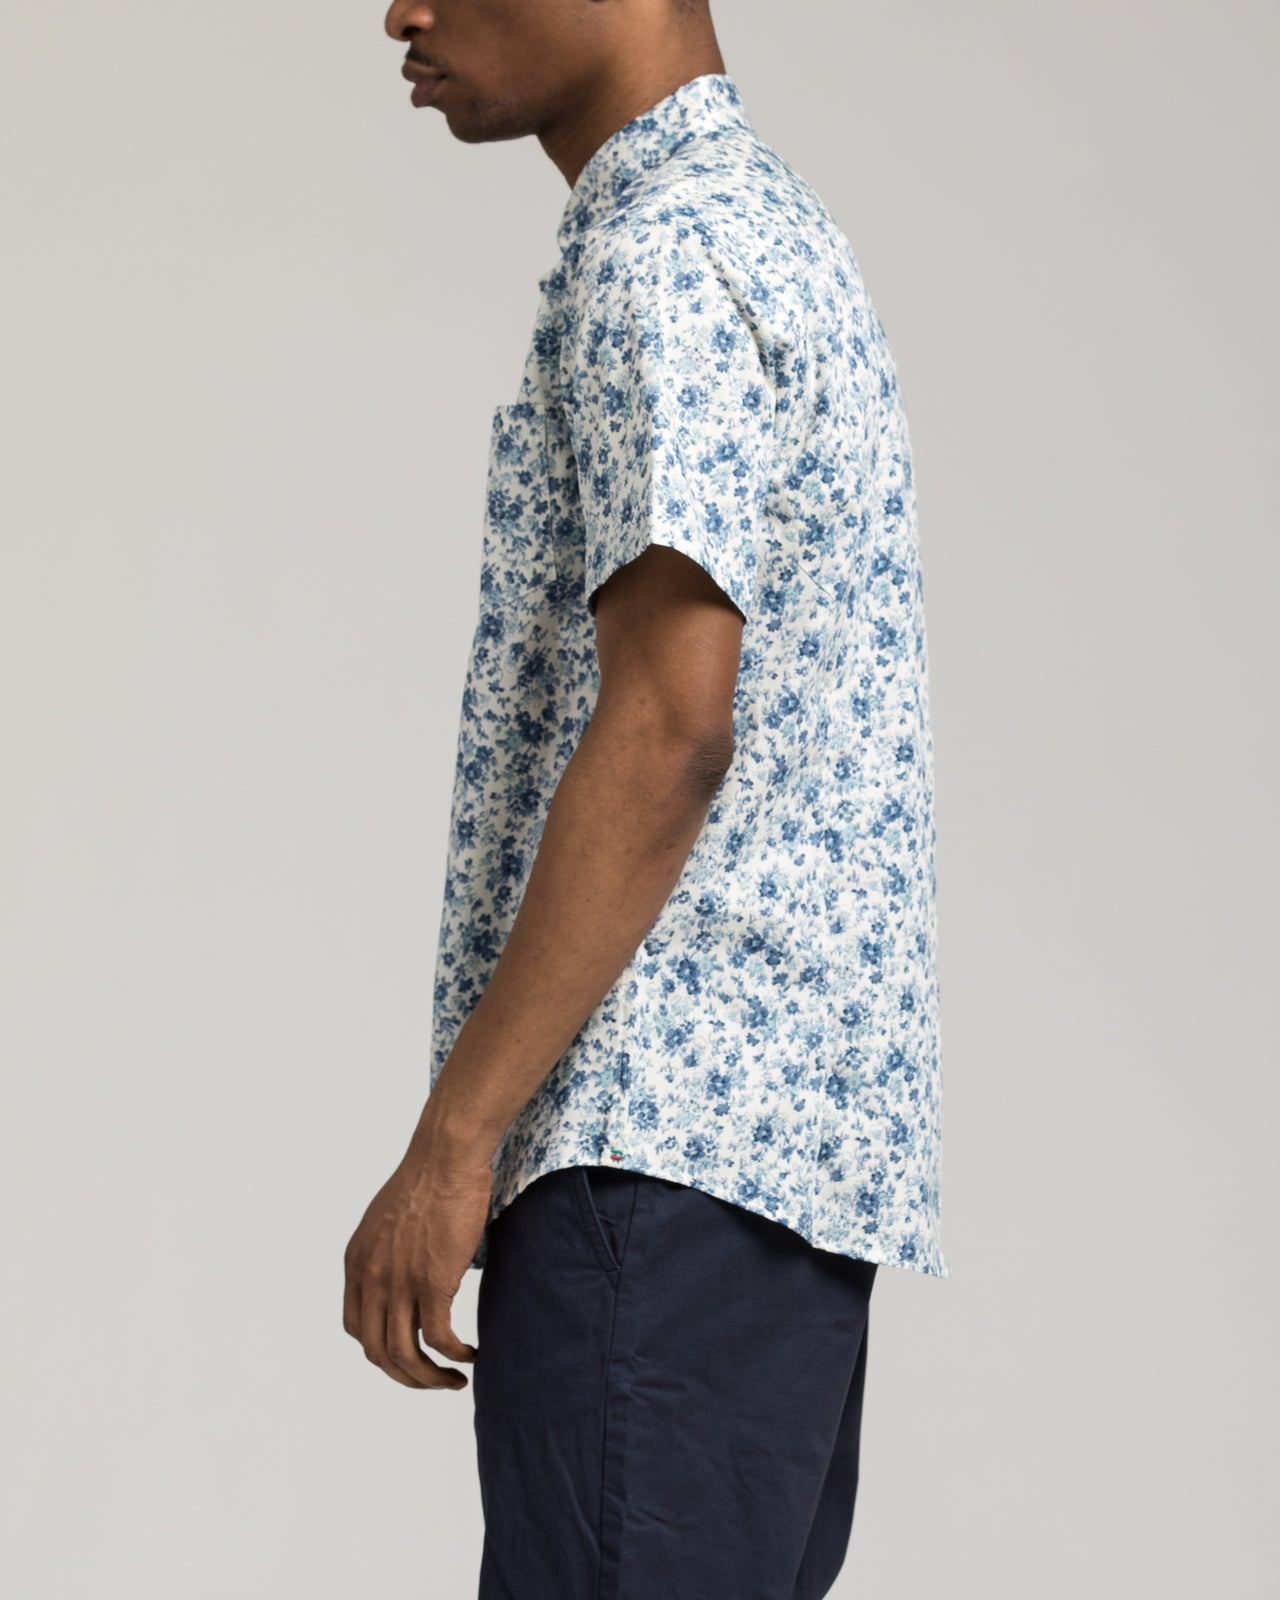 Short Sleeve Floral Shirt - Color: White/Navy | White